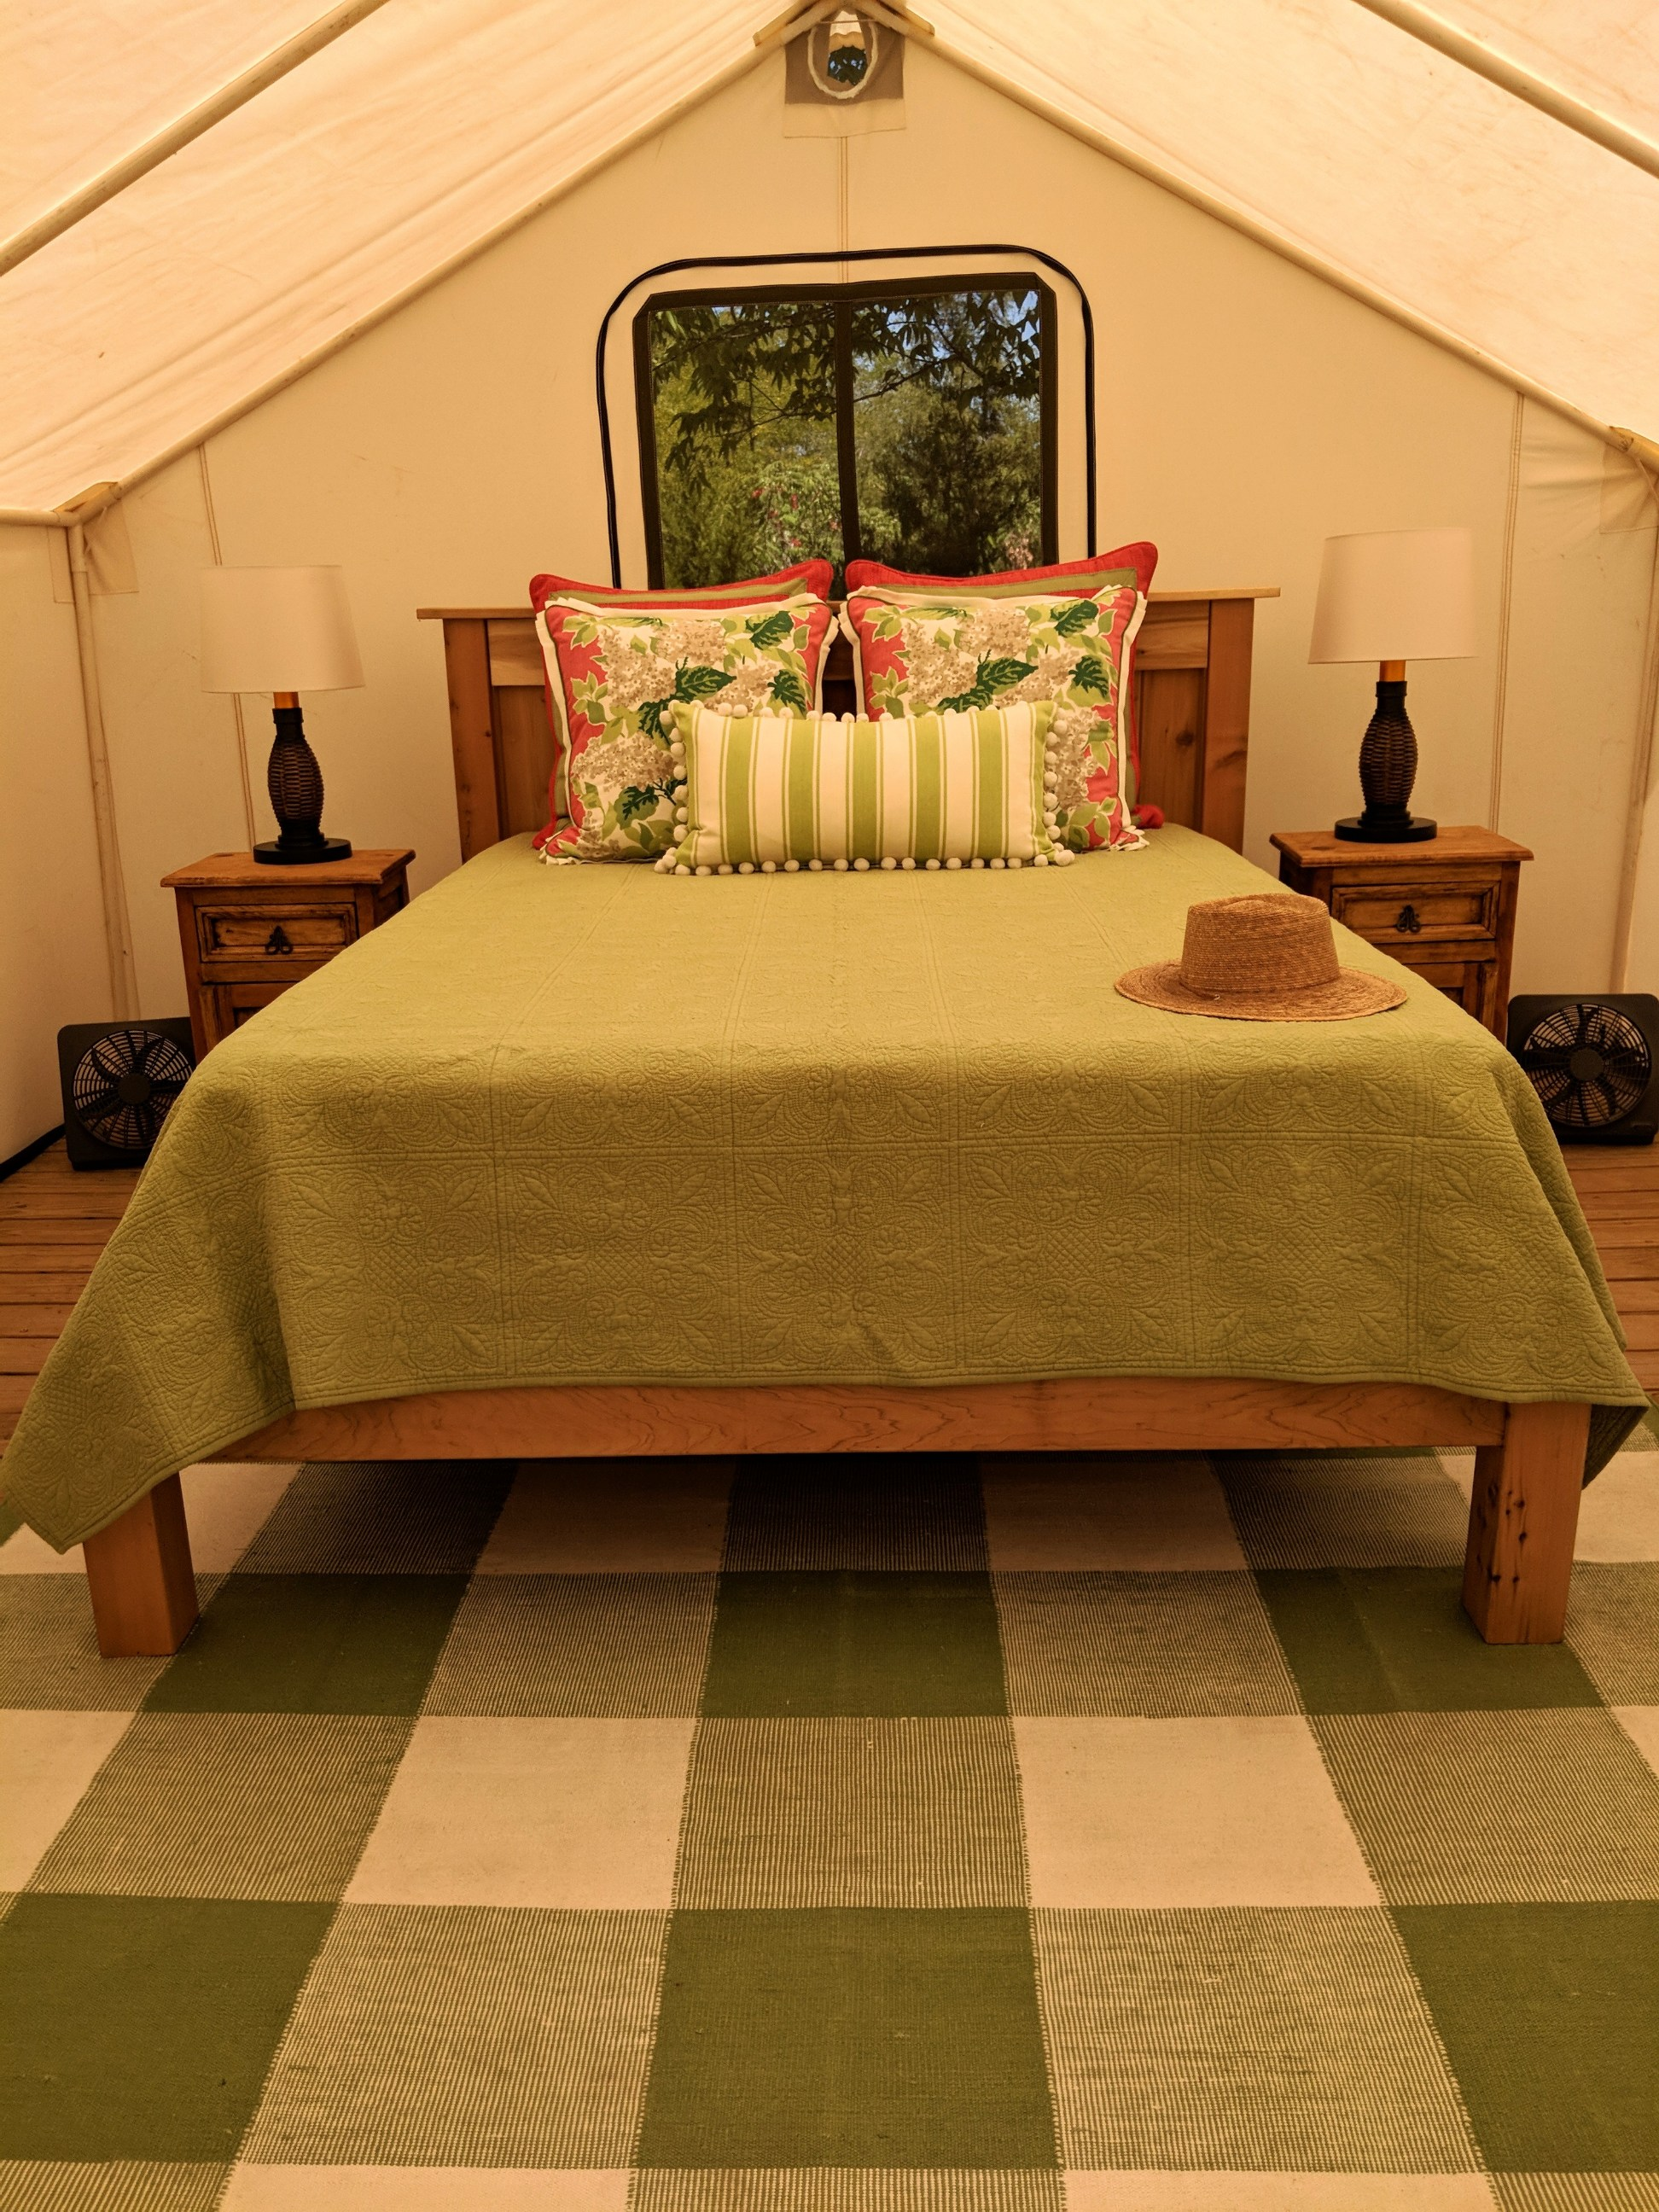 Glamping near Kansas City Missouri1)